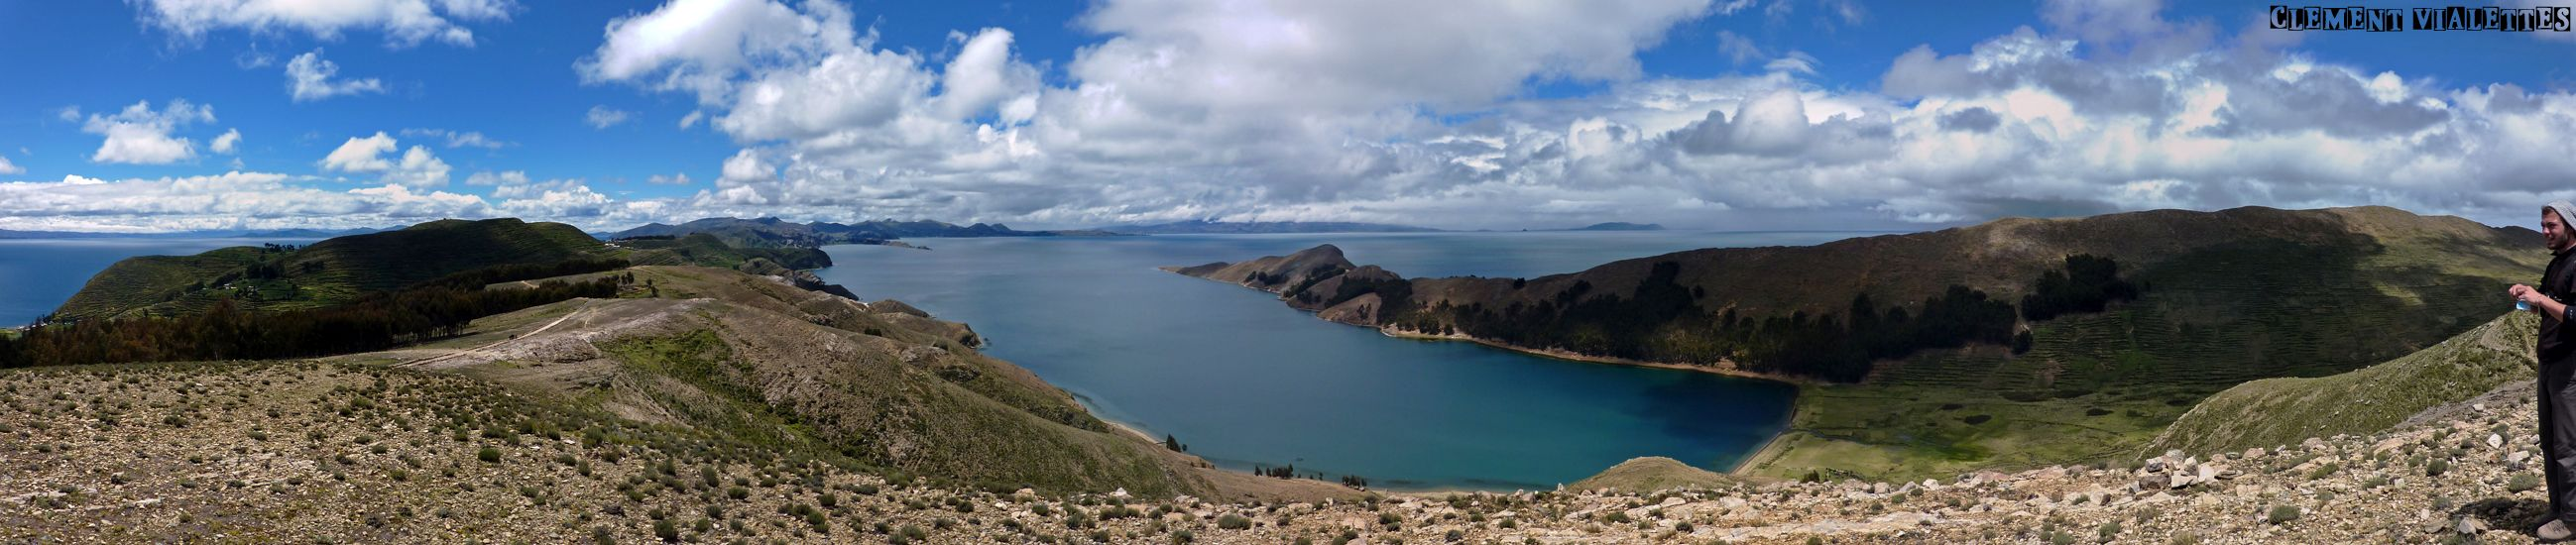 bolivie isla del sol panoramique